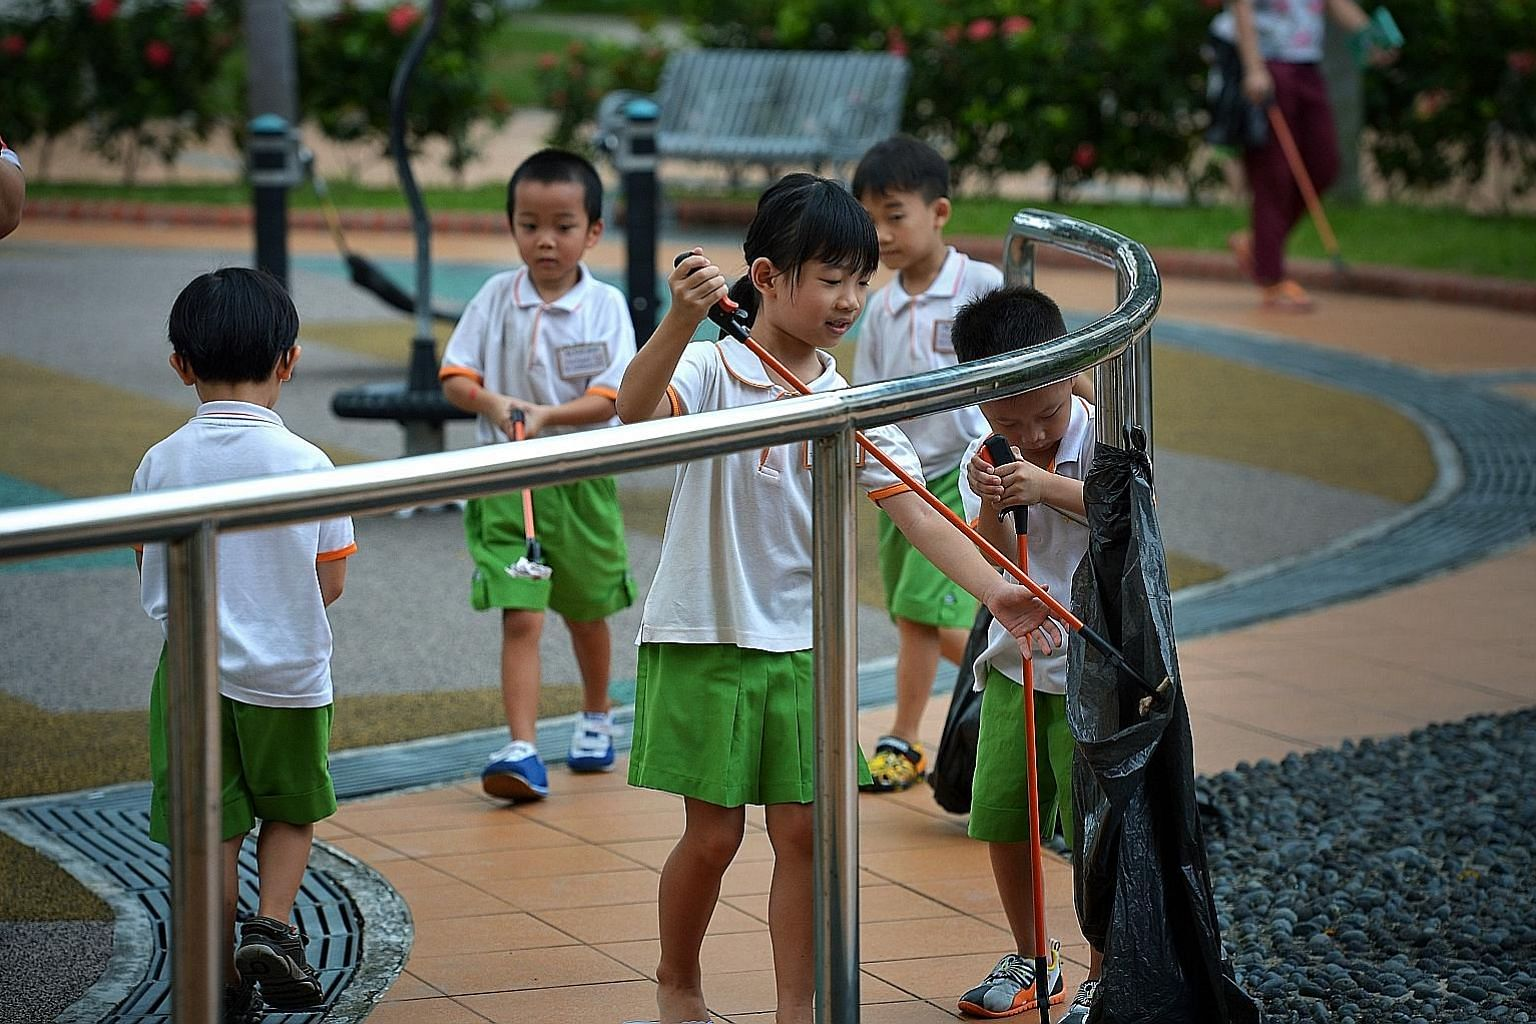 Singapore must continue updating its policies to support the changing needs of the economy and the aspirations of the people, says Prime Minister Lee Hsien Loong. For education, this includes starting earlier in life, improving pre-school and making